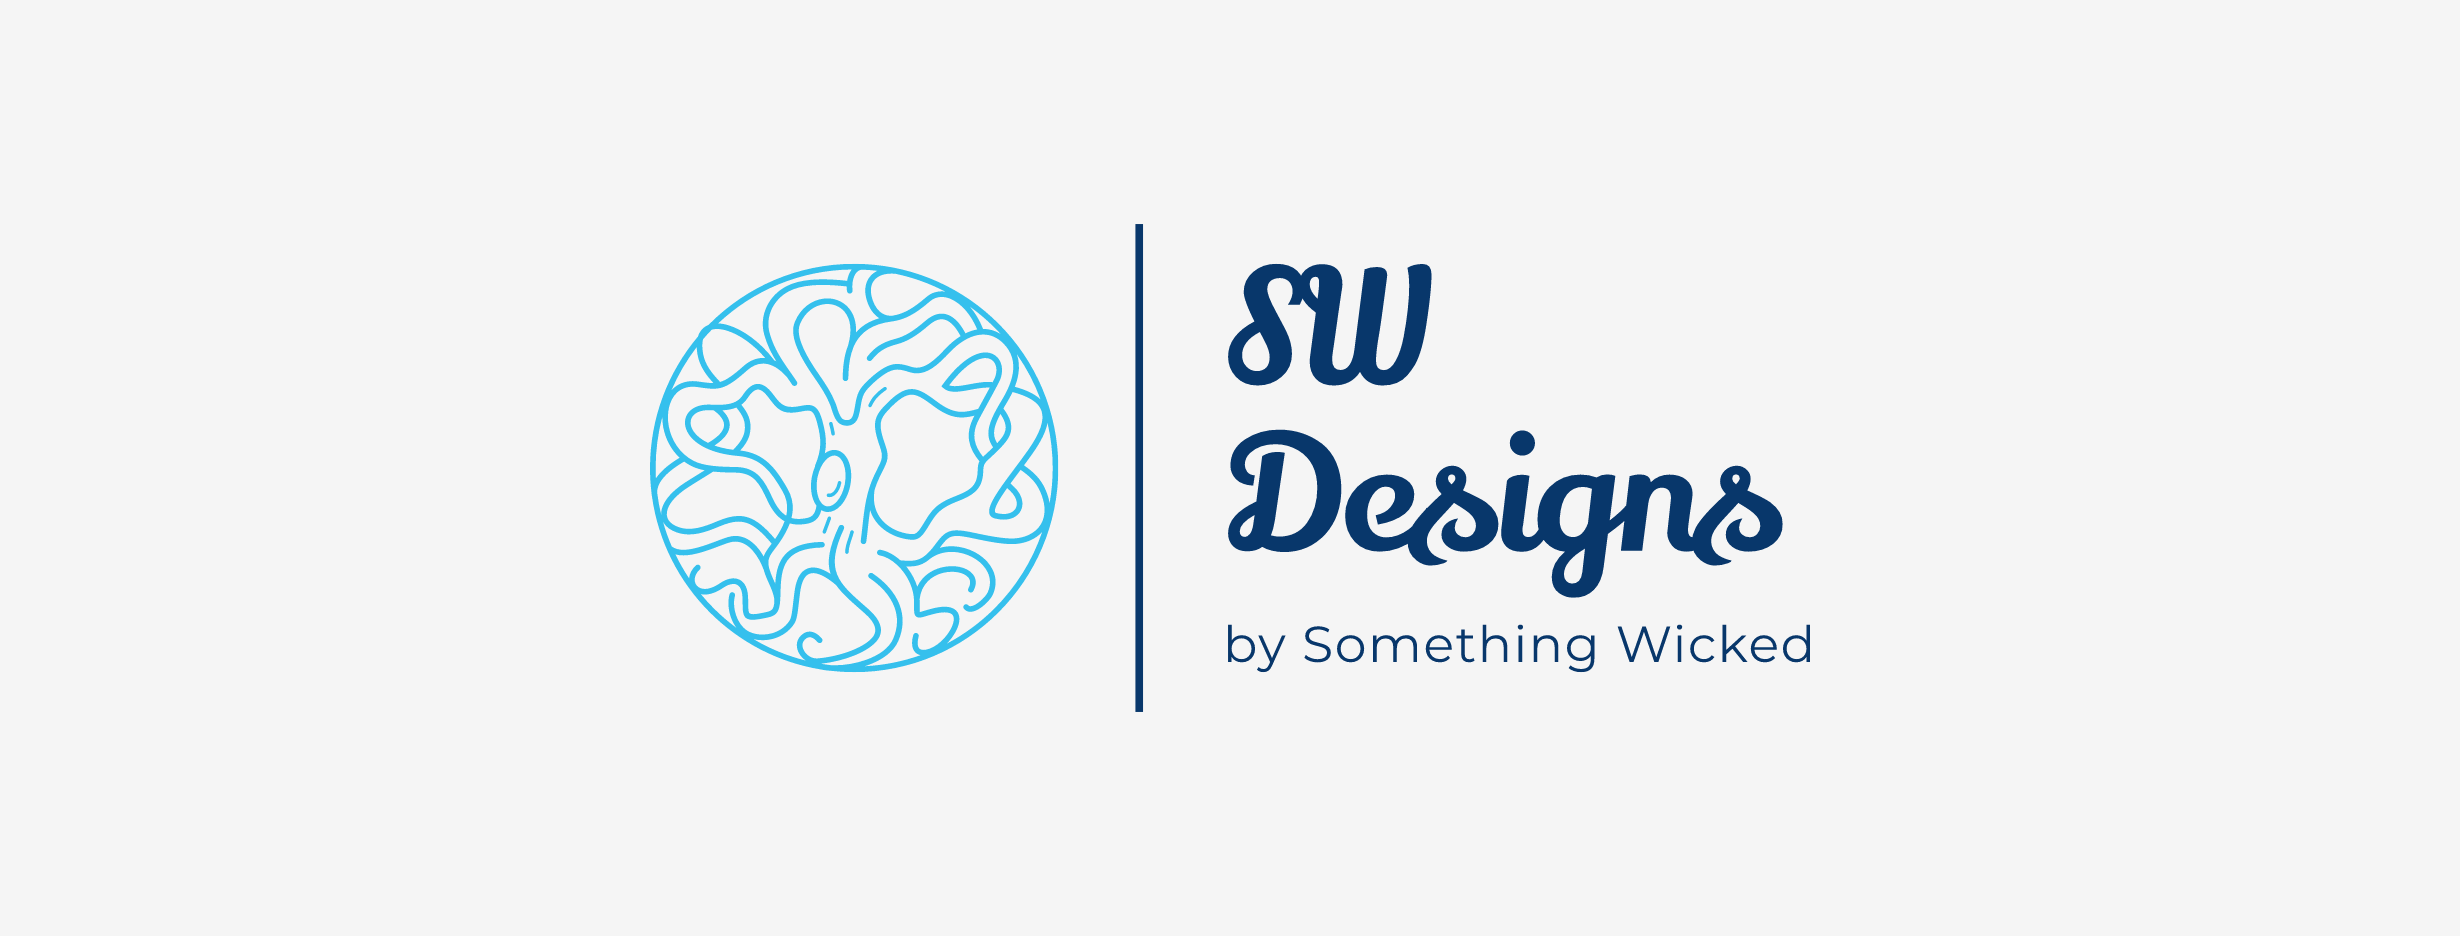 SW Designs by Something Wicked Logo